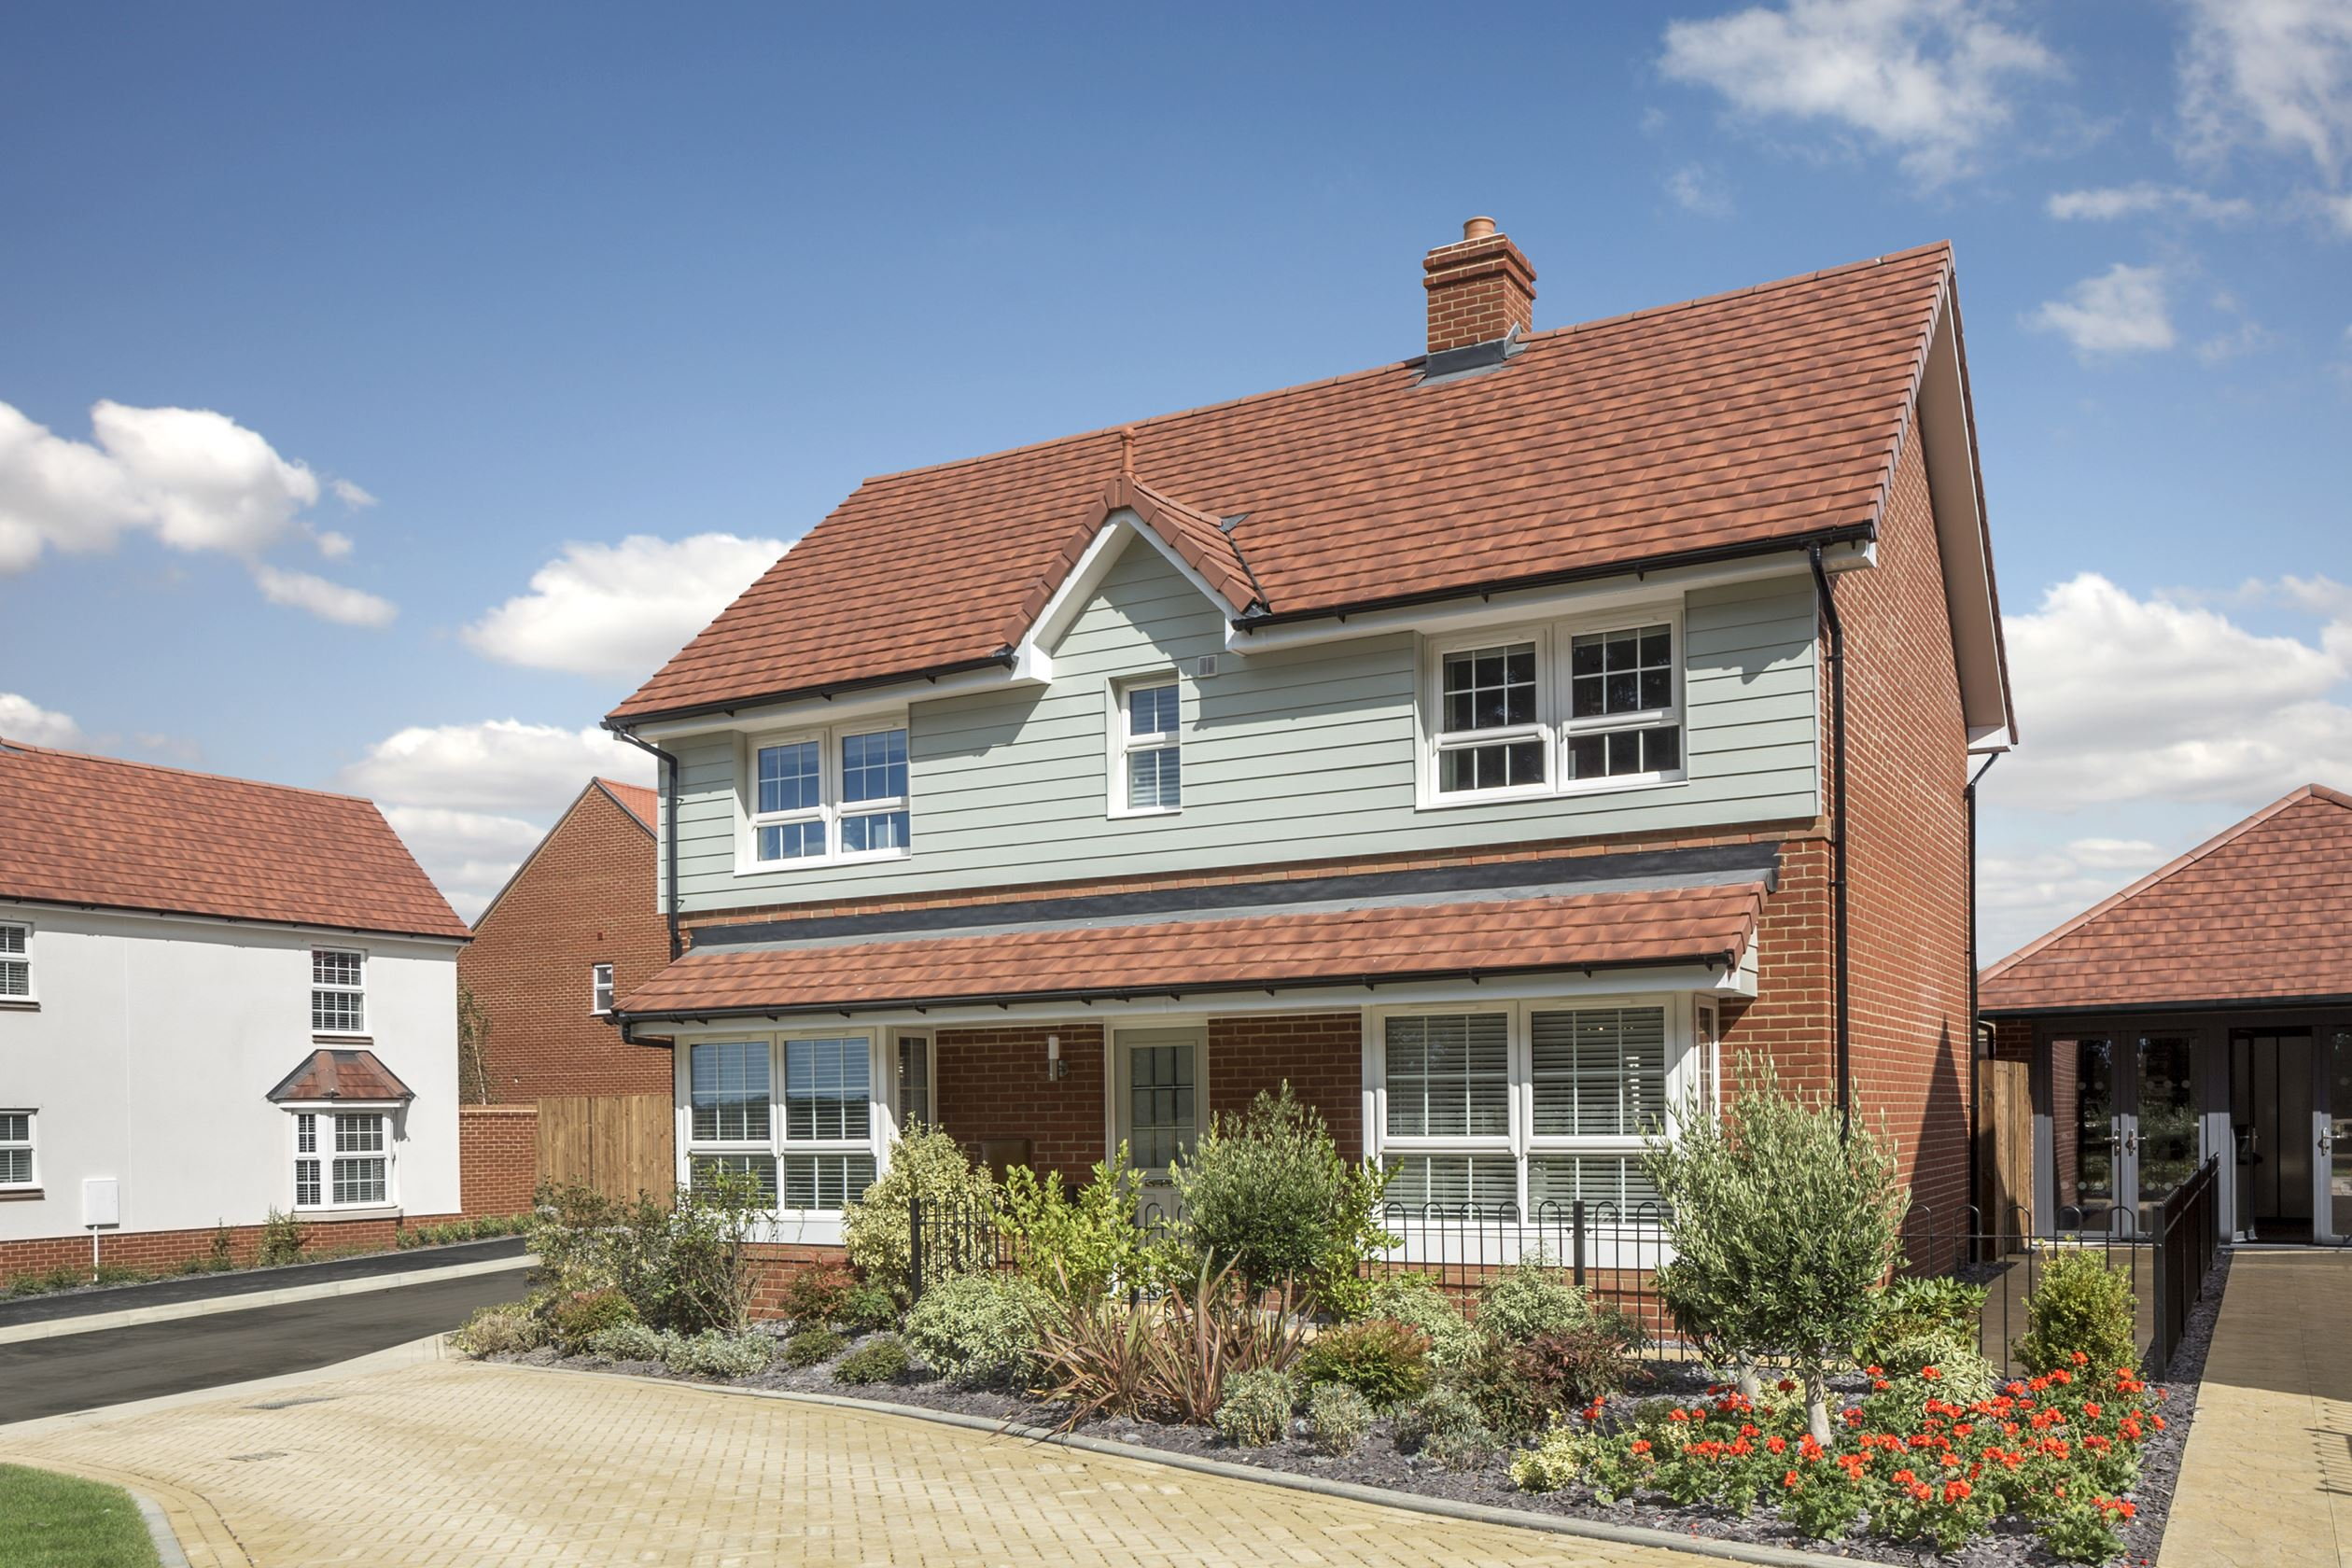 Alnmouth show home external image